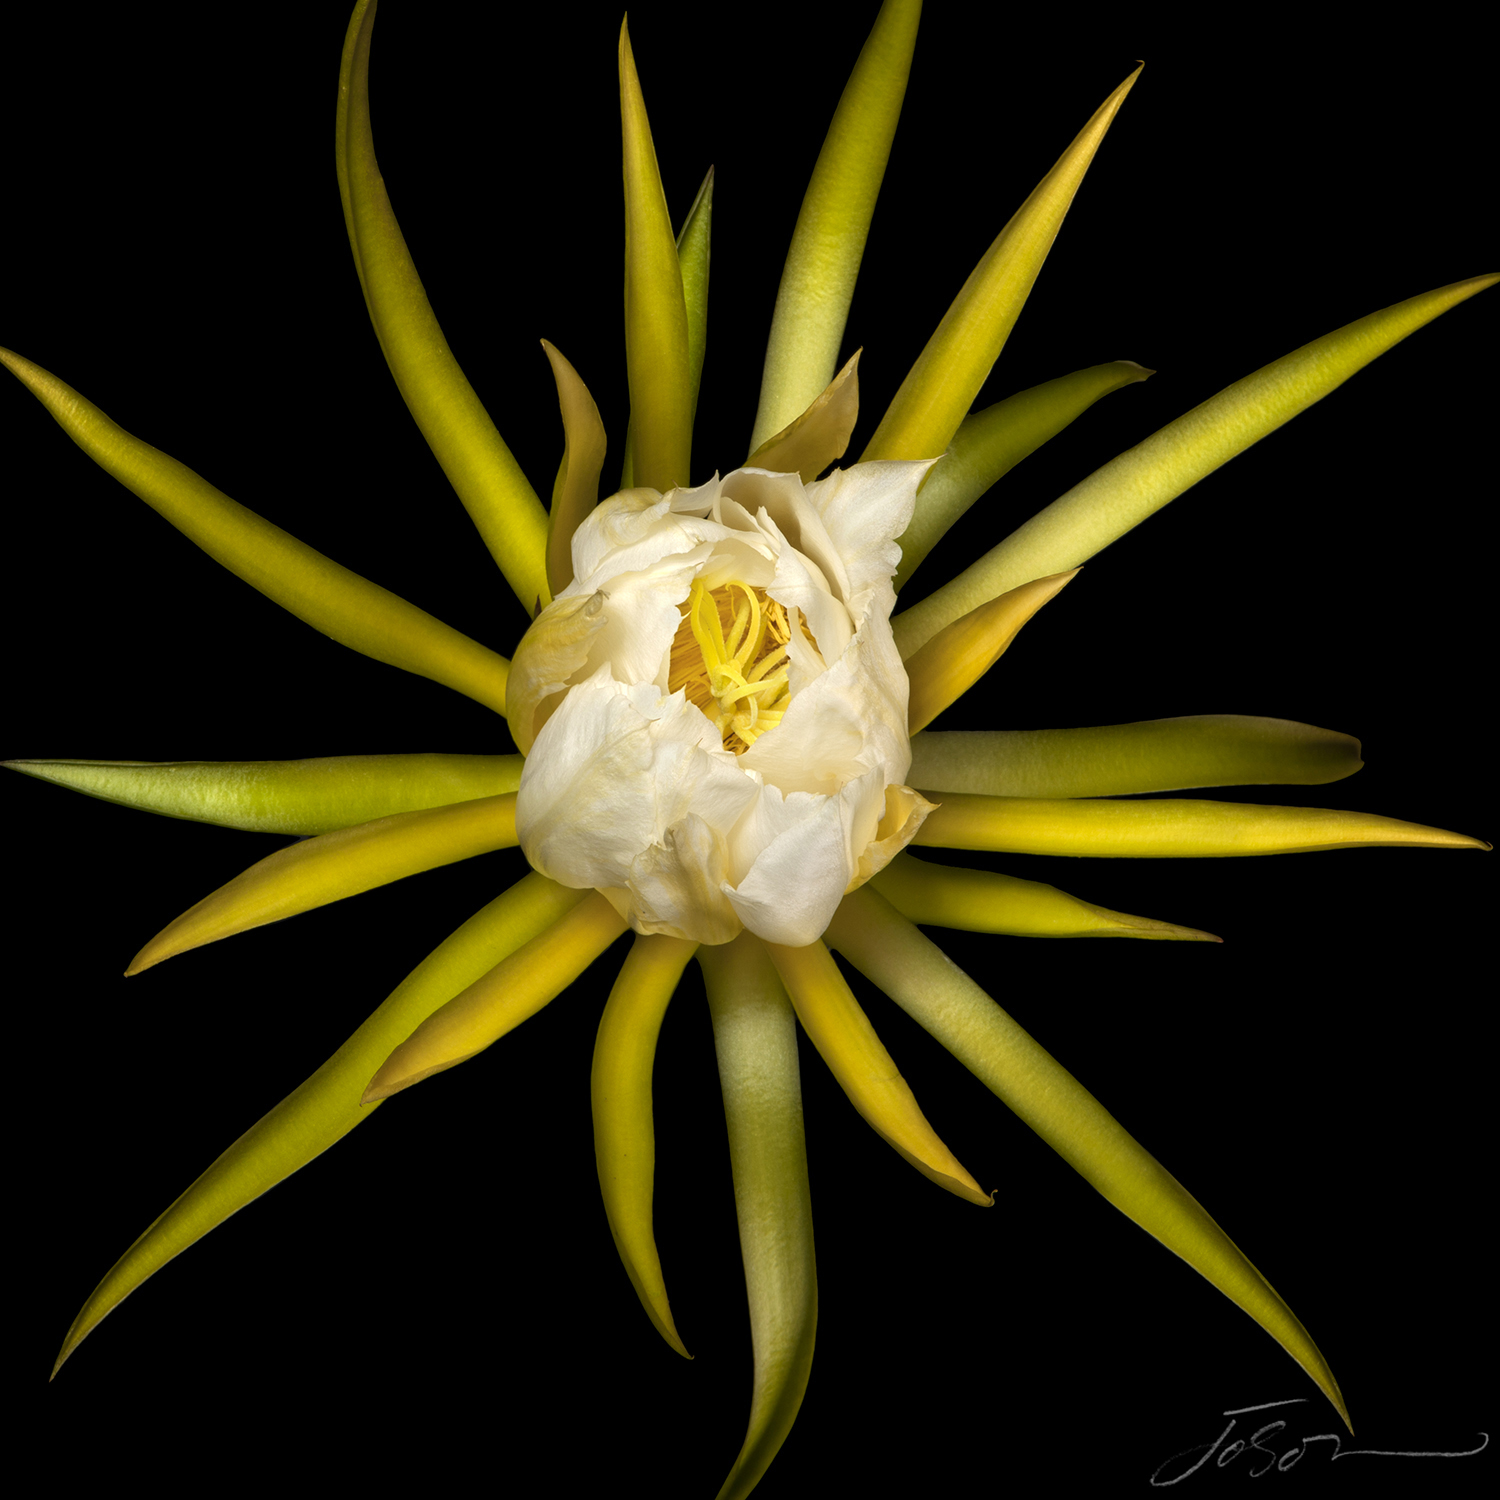 Dragon fruit flower (Hylocereus undatus).jpg